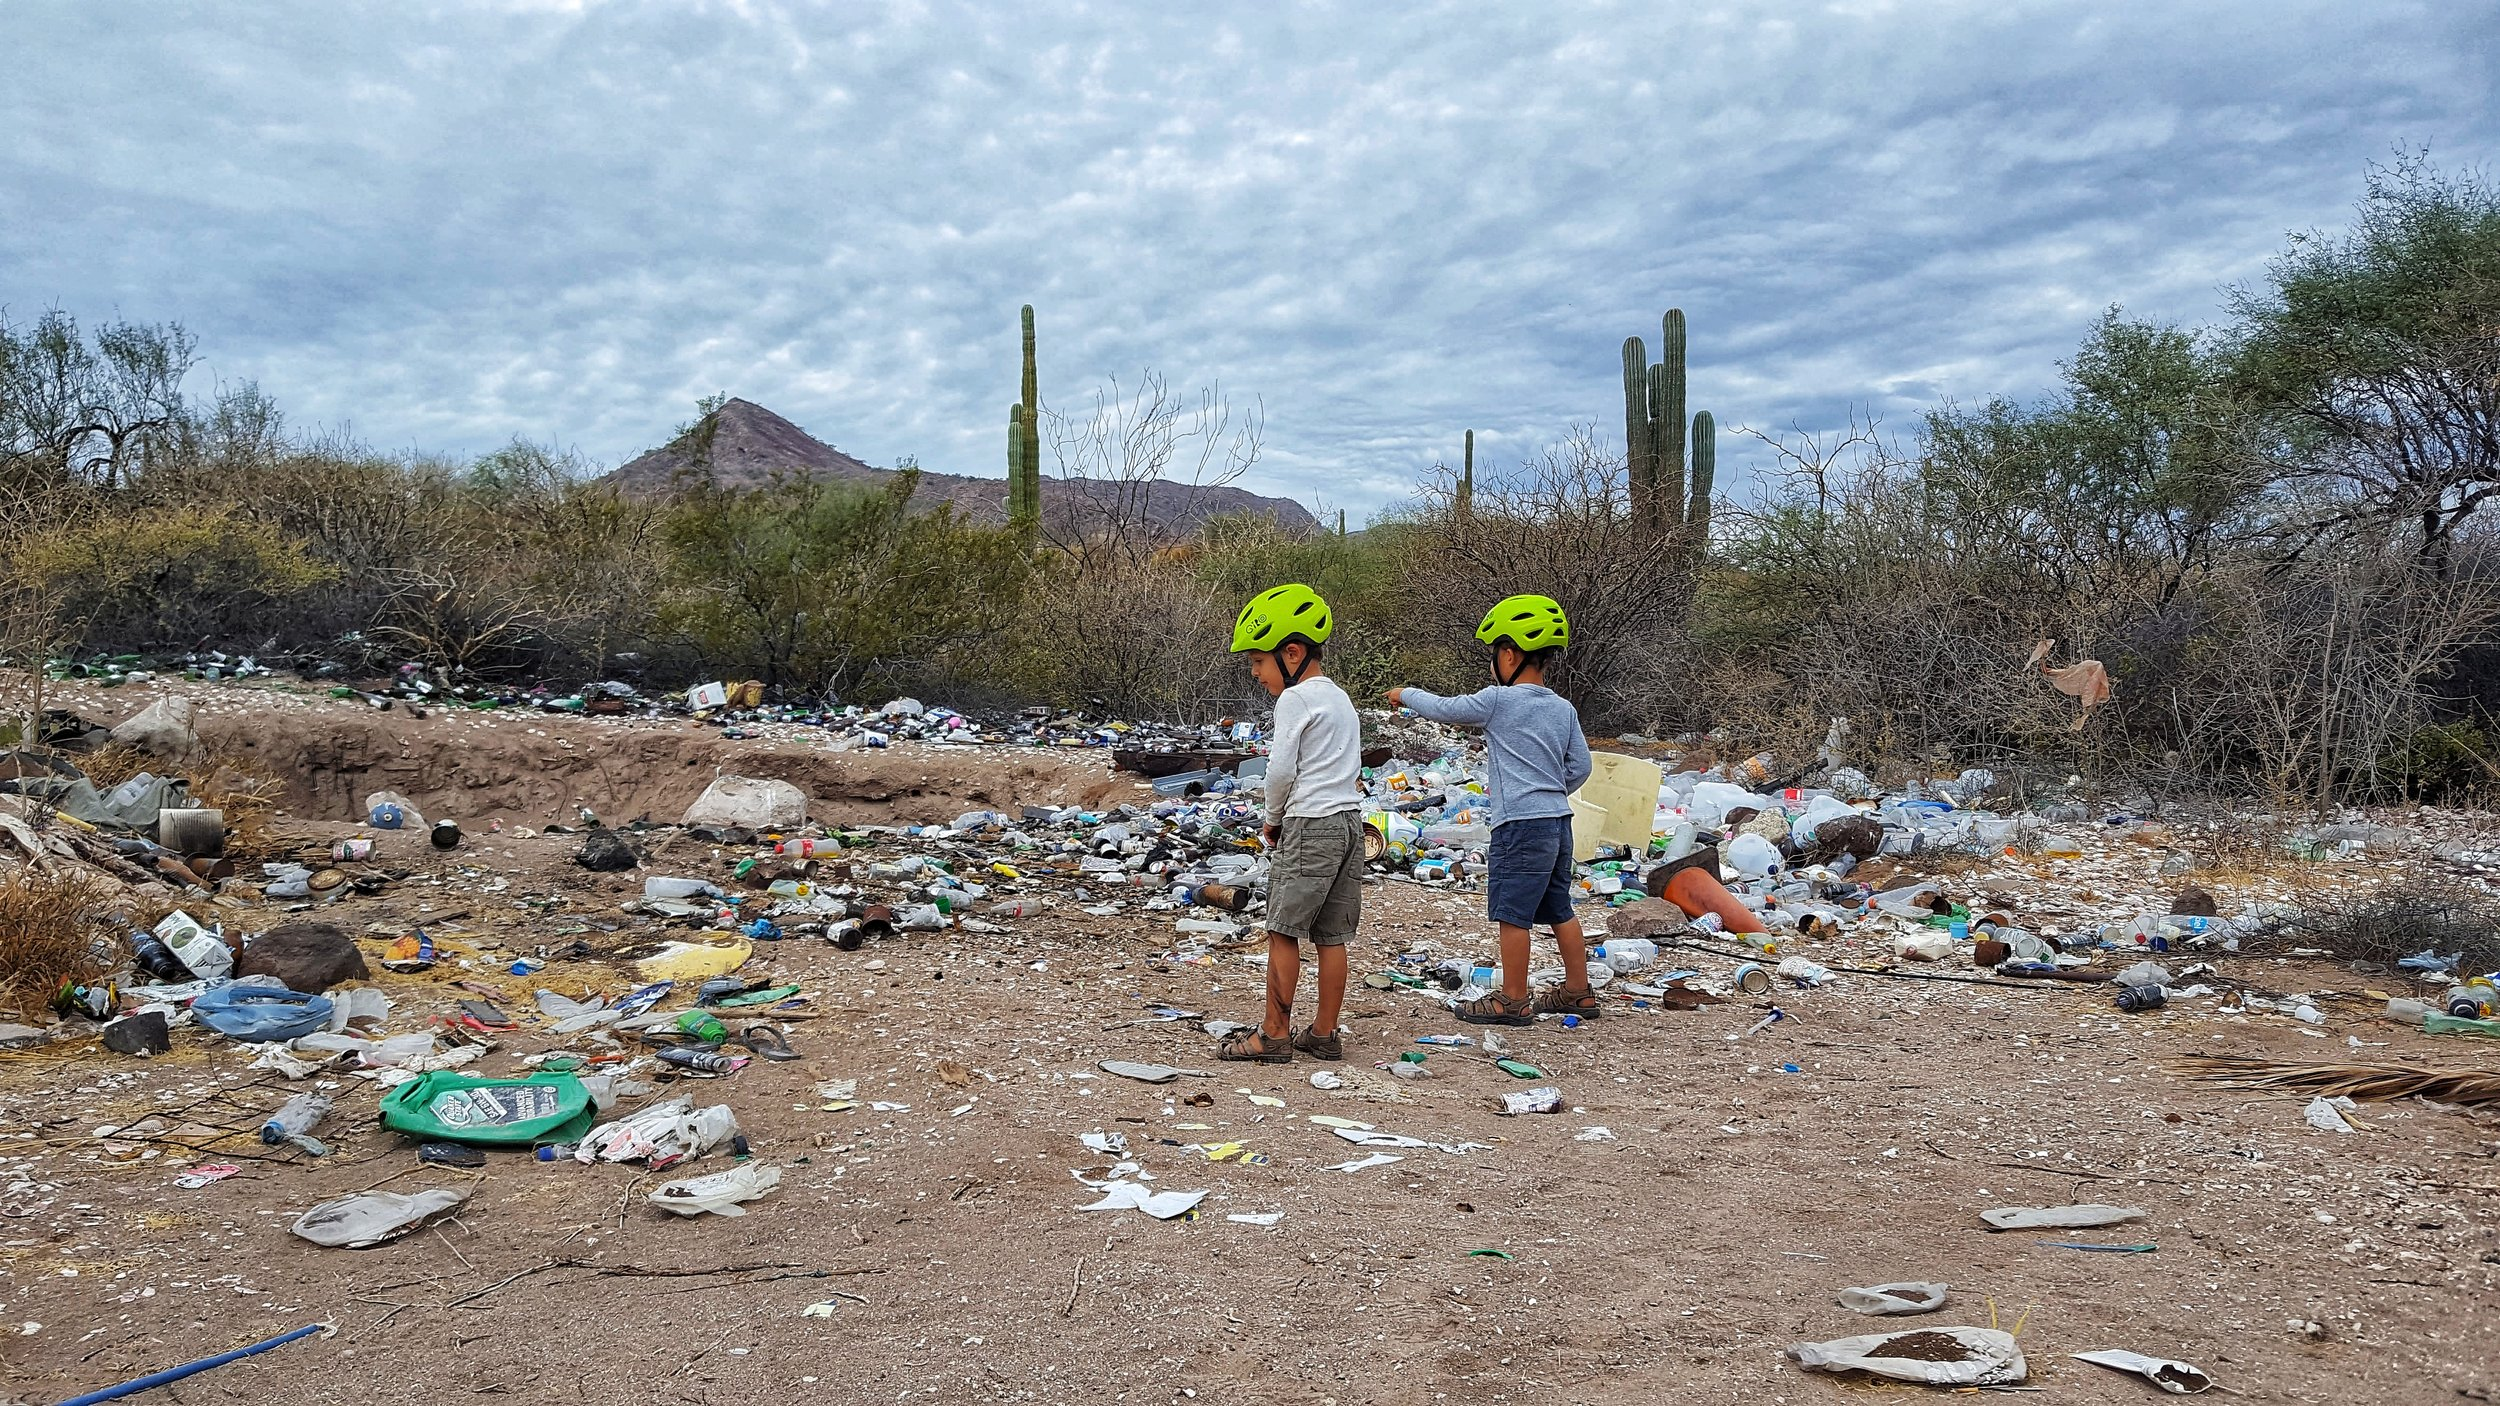 The trash problem in Baja is depressing though. Heaps of it!